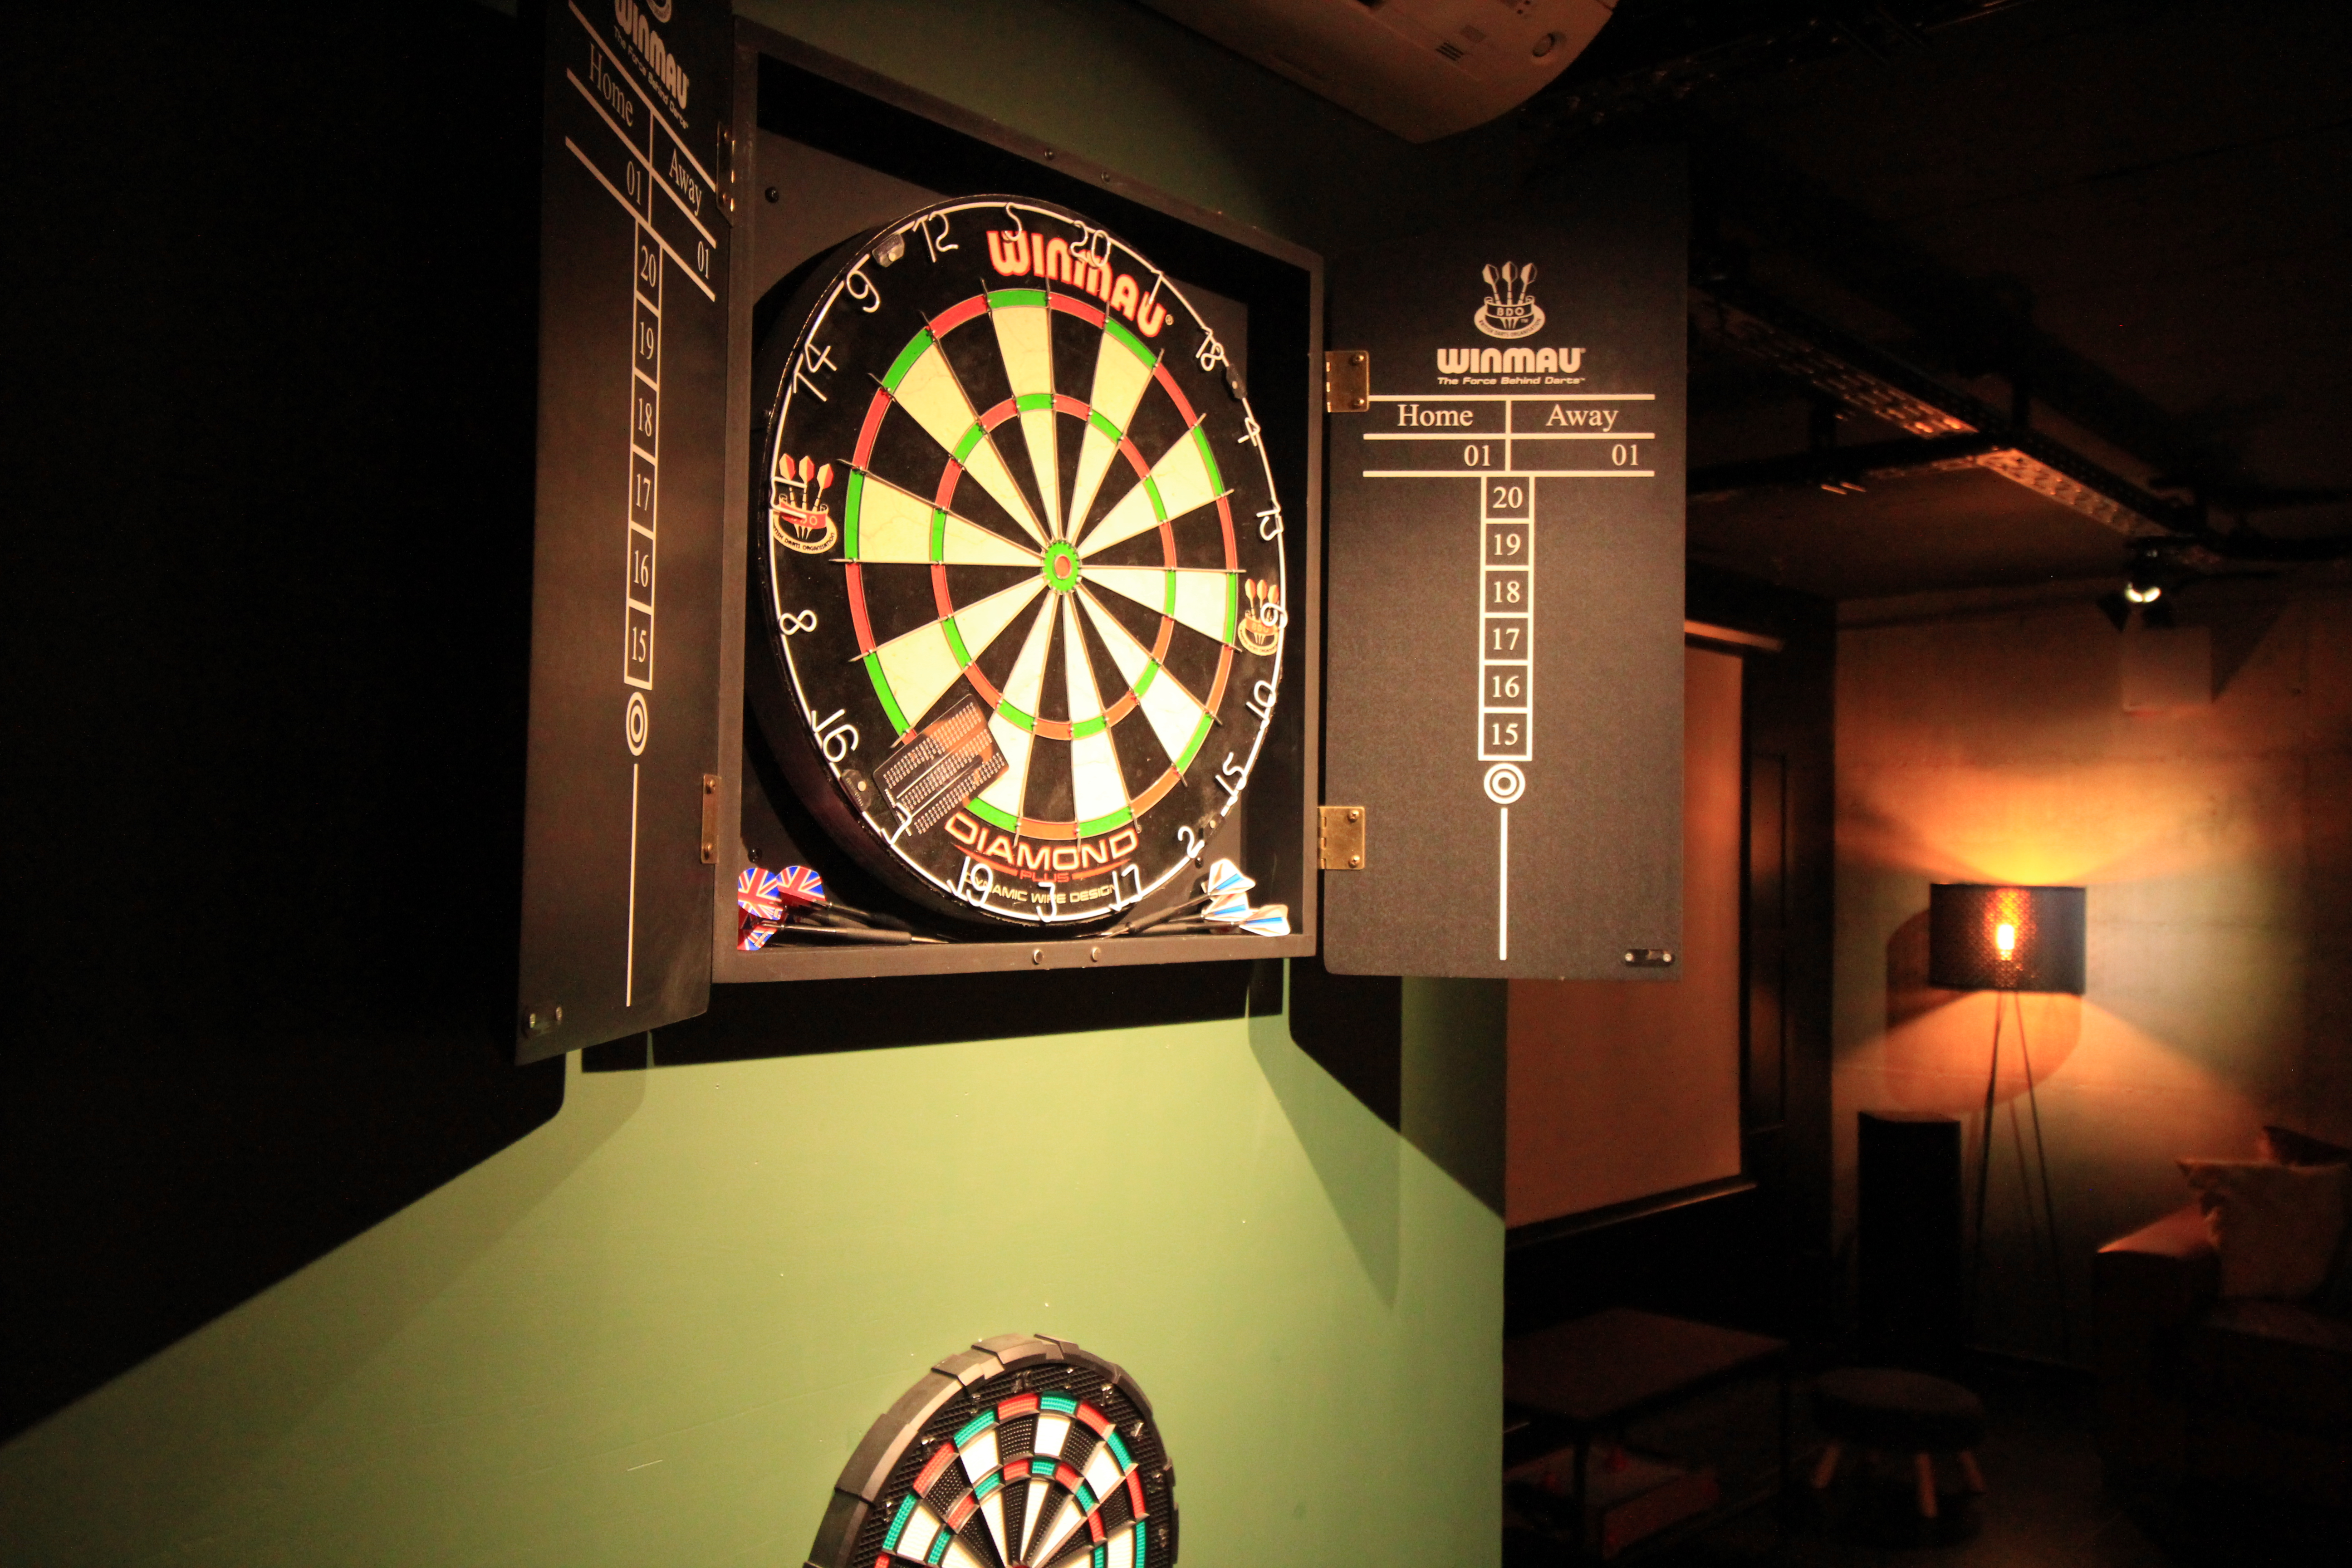 darts anyone? pikado villa2m